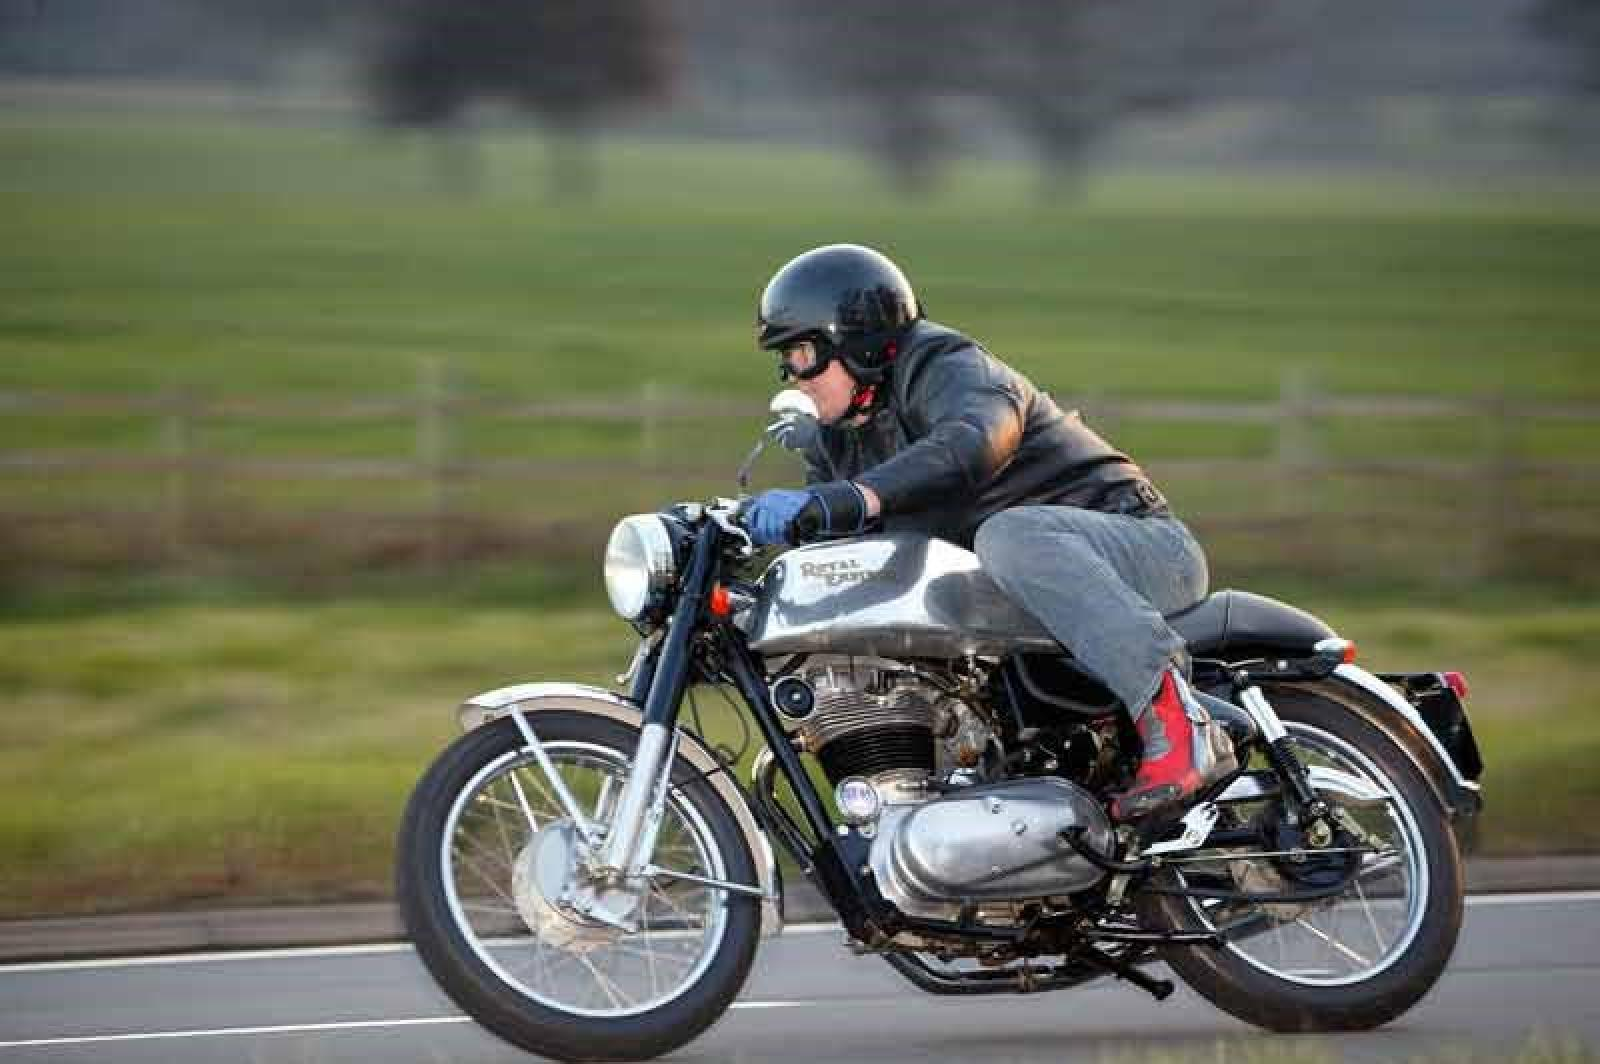 1991 Enfield 500 Bullet (reduced effect) #6